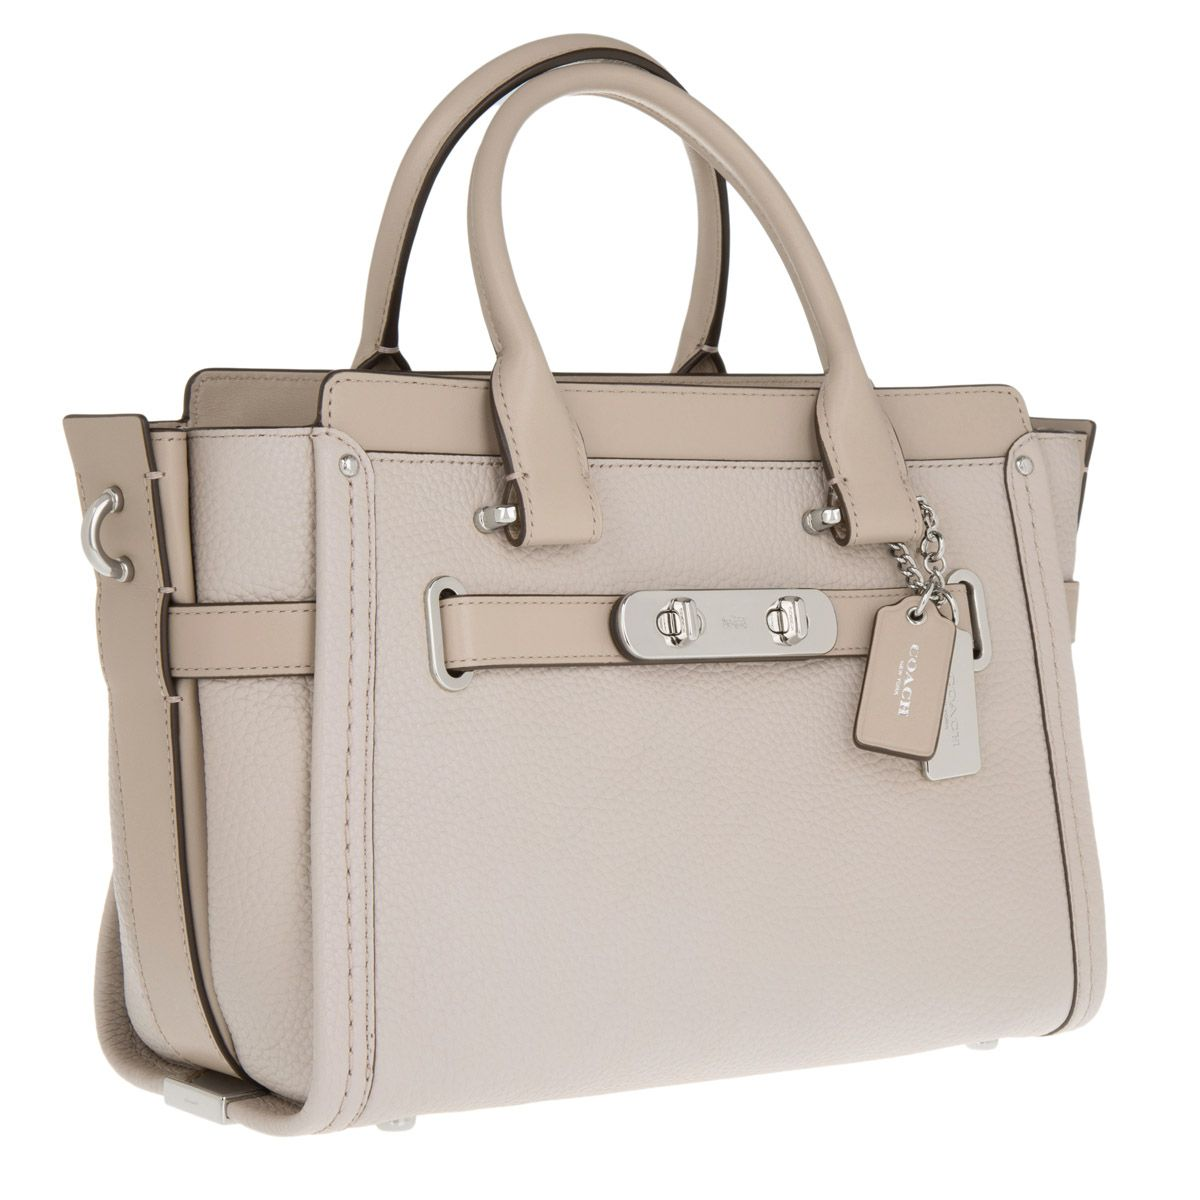 Coach Swagger 27 Carryall Bag in Heather Grey Calfskin Coach Clearance Best Place Buy Authentic Online YE8FO